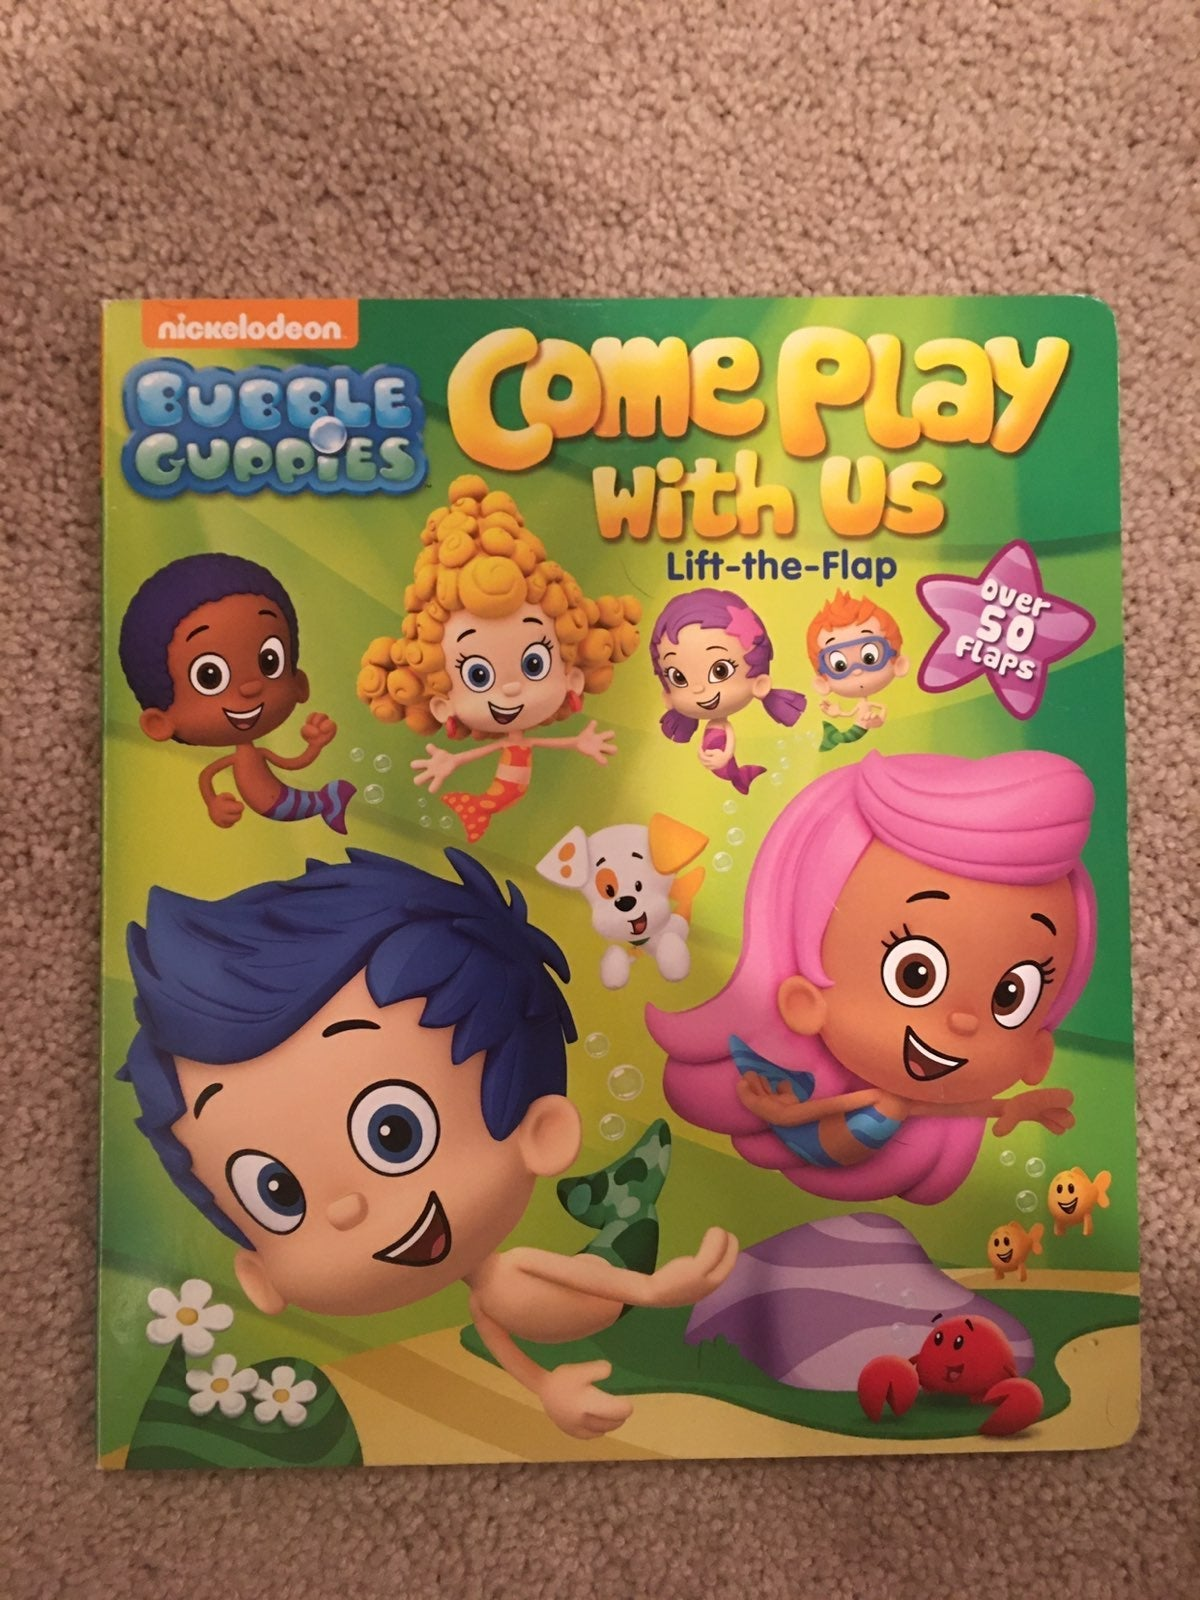 Bubble Guppies hard cover flap book